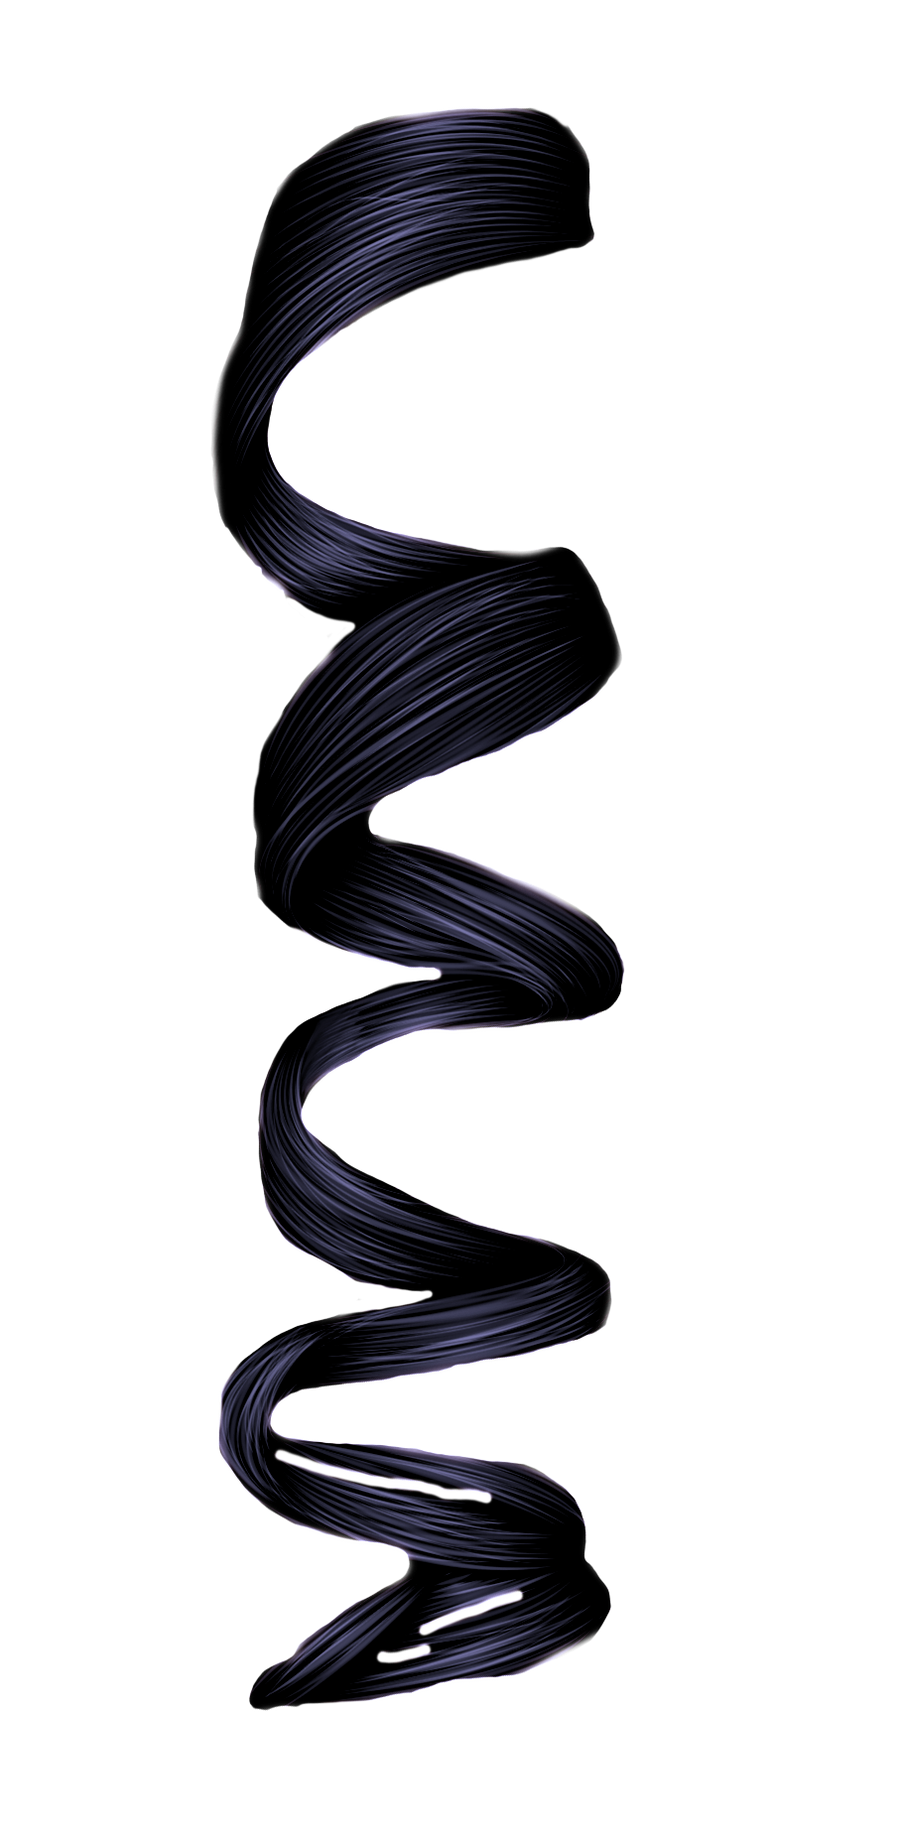 Curl Black By Hellonlegs On Deviantart